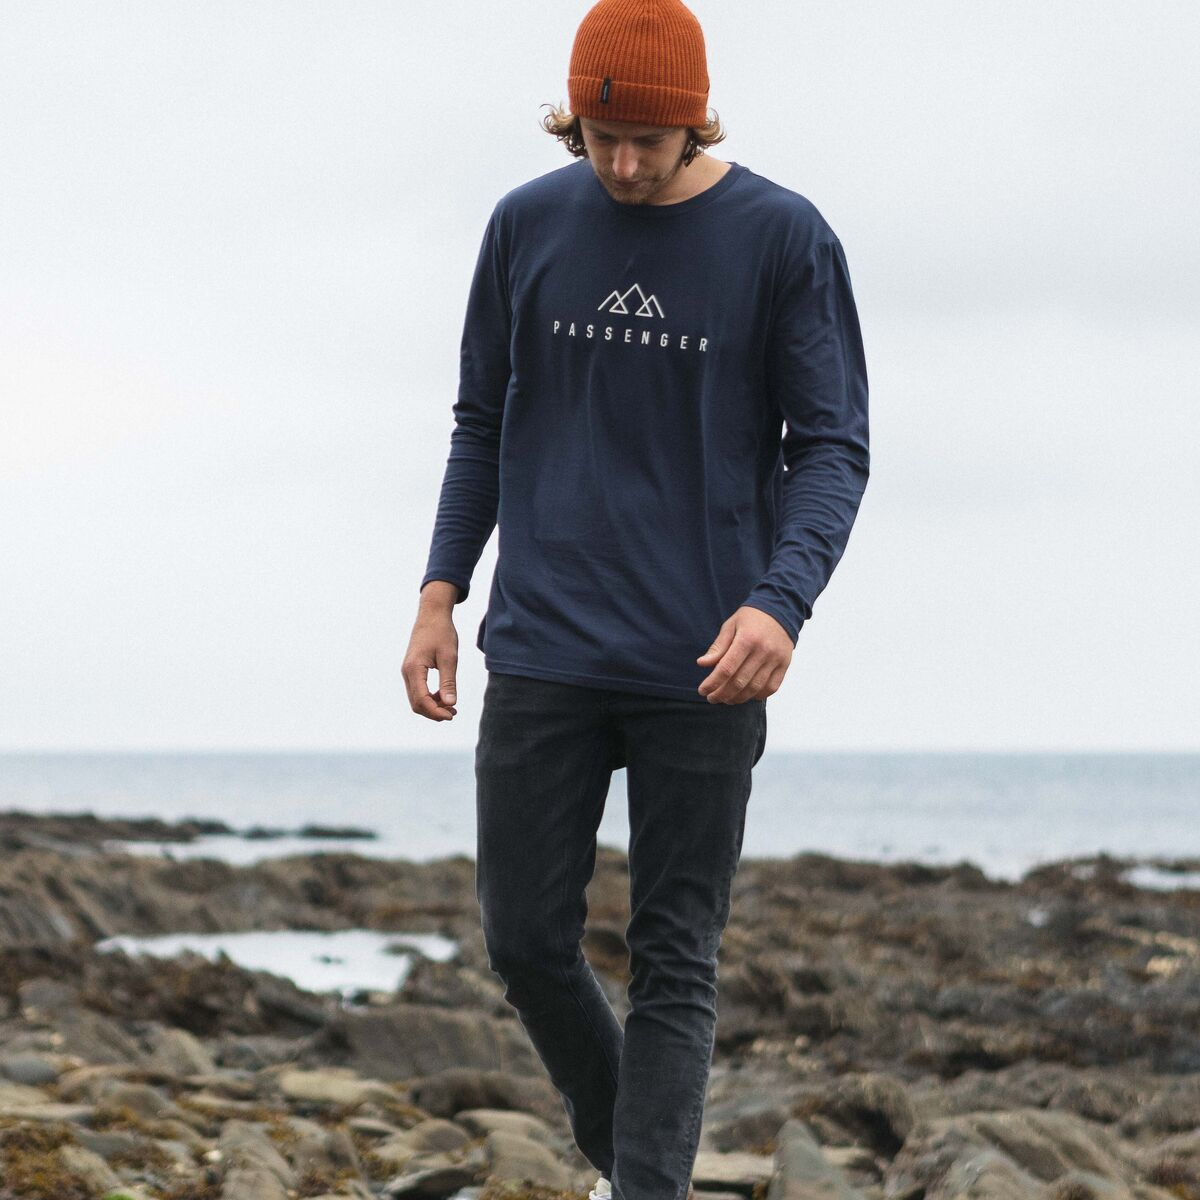 Hatchet  L/S T-Shirt - Navy image 4